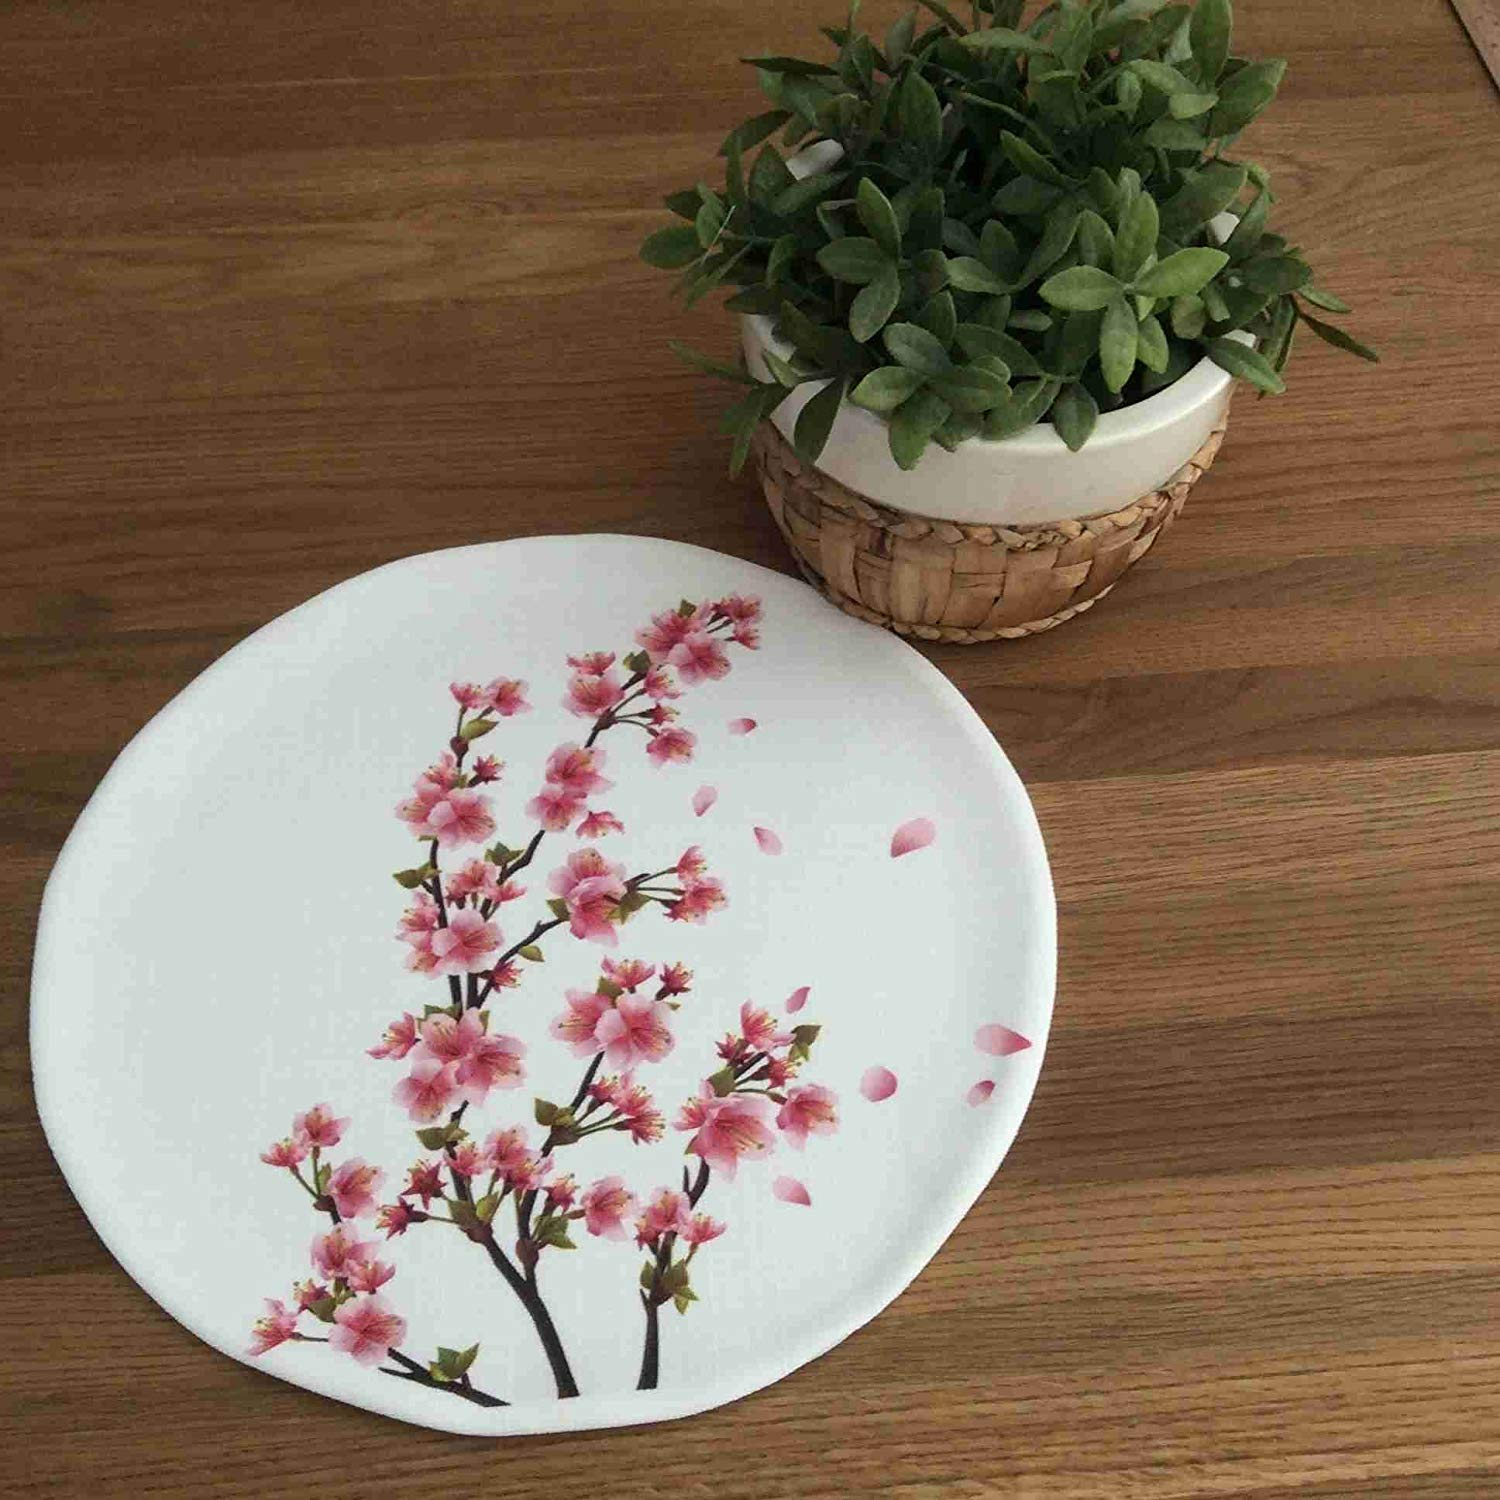 "TekgulDesign Springtime Placemats,%100 Polyester, Handmade, Diameter: 35cm (14""), Crease Resistant and Stain-Proof Fabric, Modern and Colorful Ultra HD Graphics."